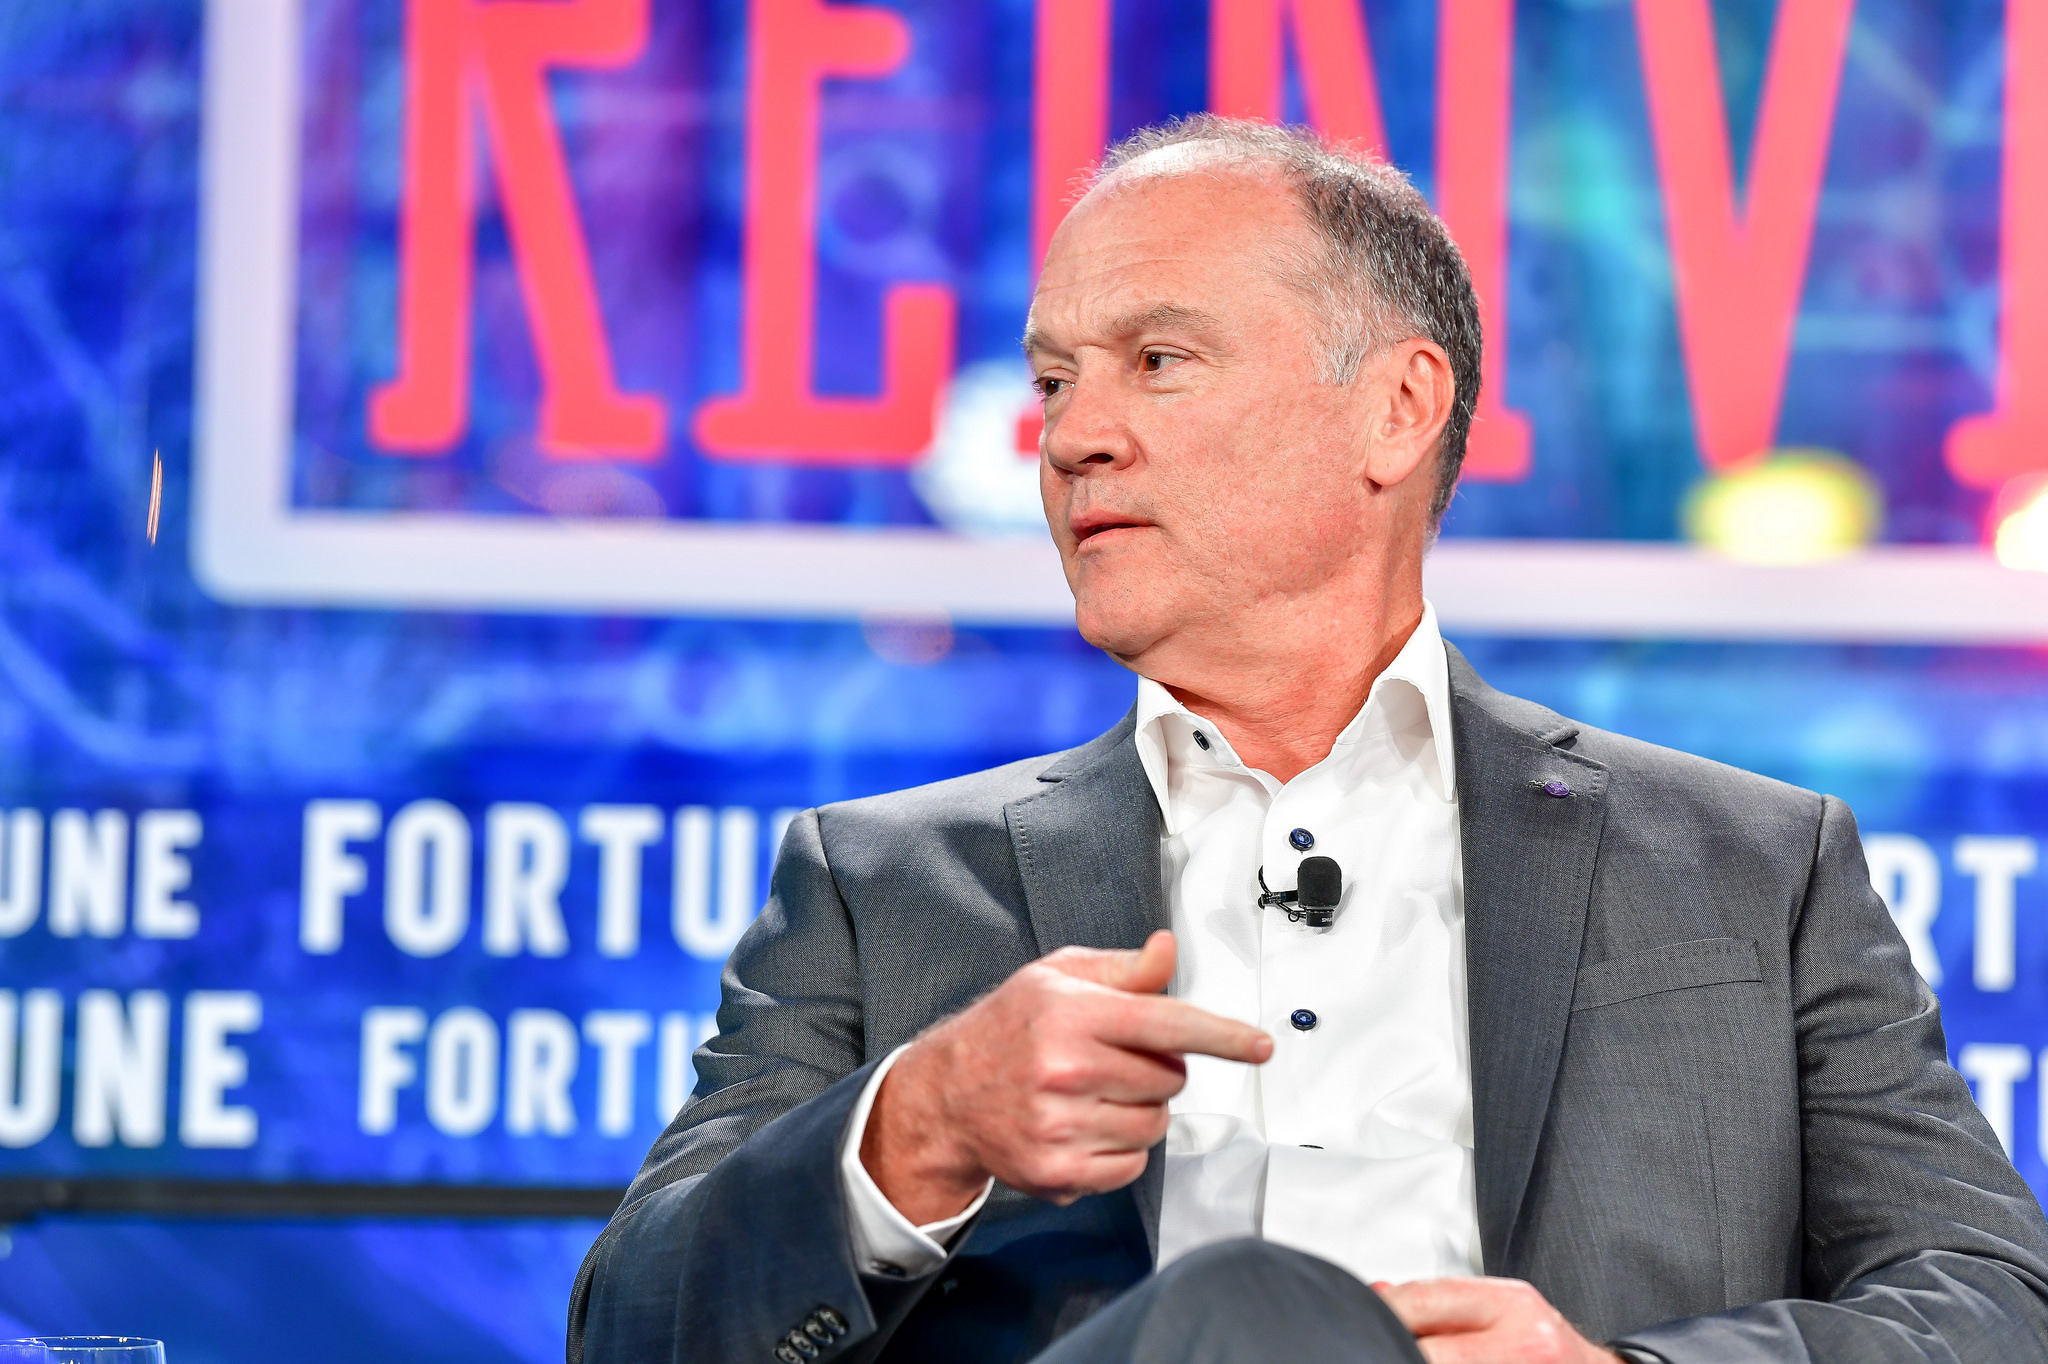 AT&T Communications CEO John Donovan speaks at Fortune Brainstorm Reinvent about the Department of Justice's attempts to block its merger with Time Warner.